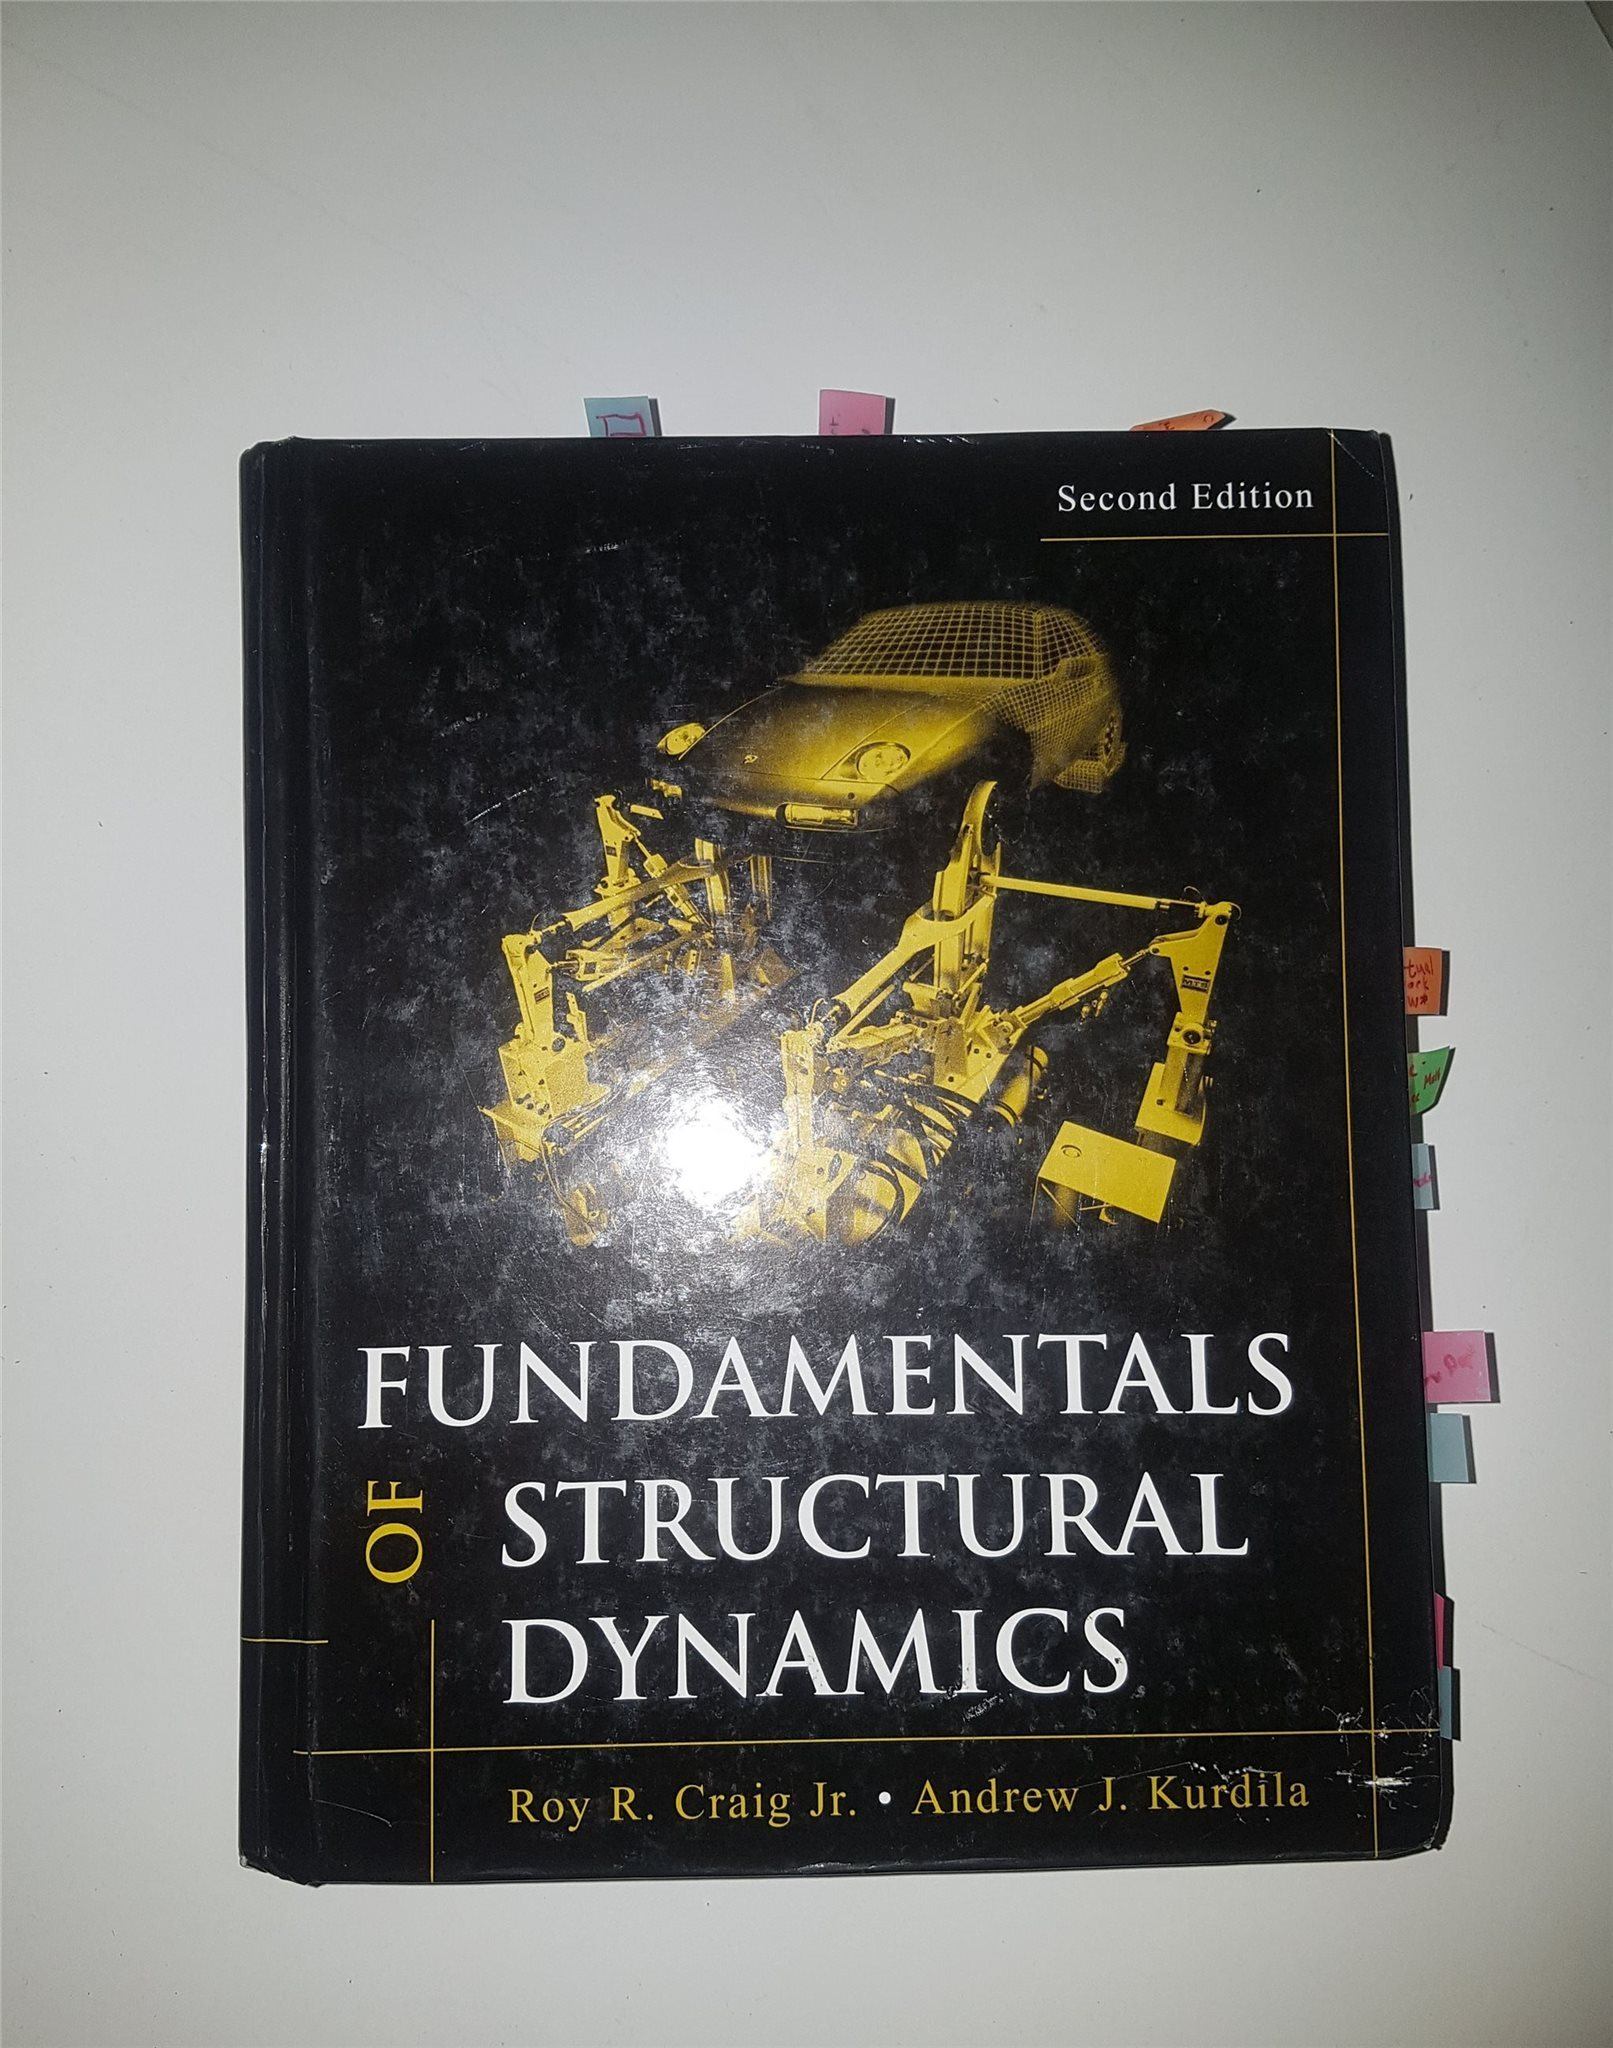 Fundamentals of structural dynamics, utgåva 2